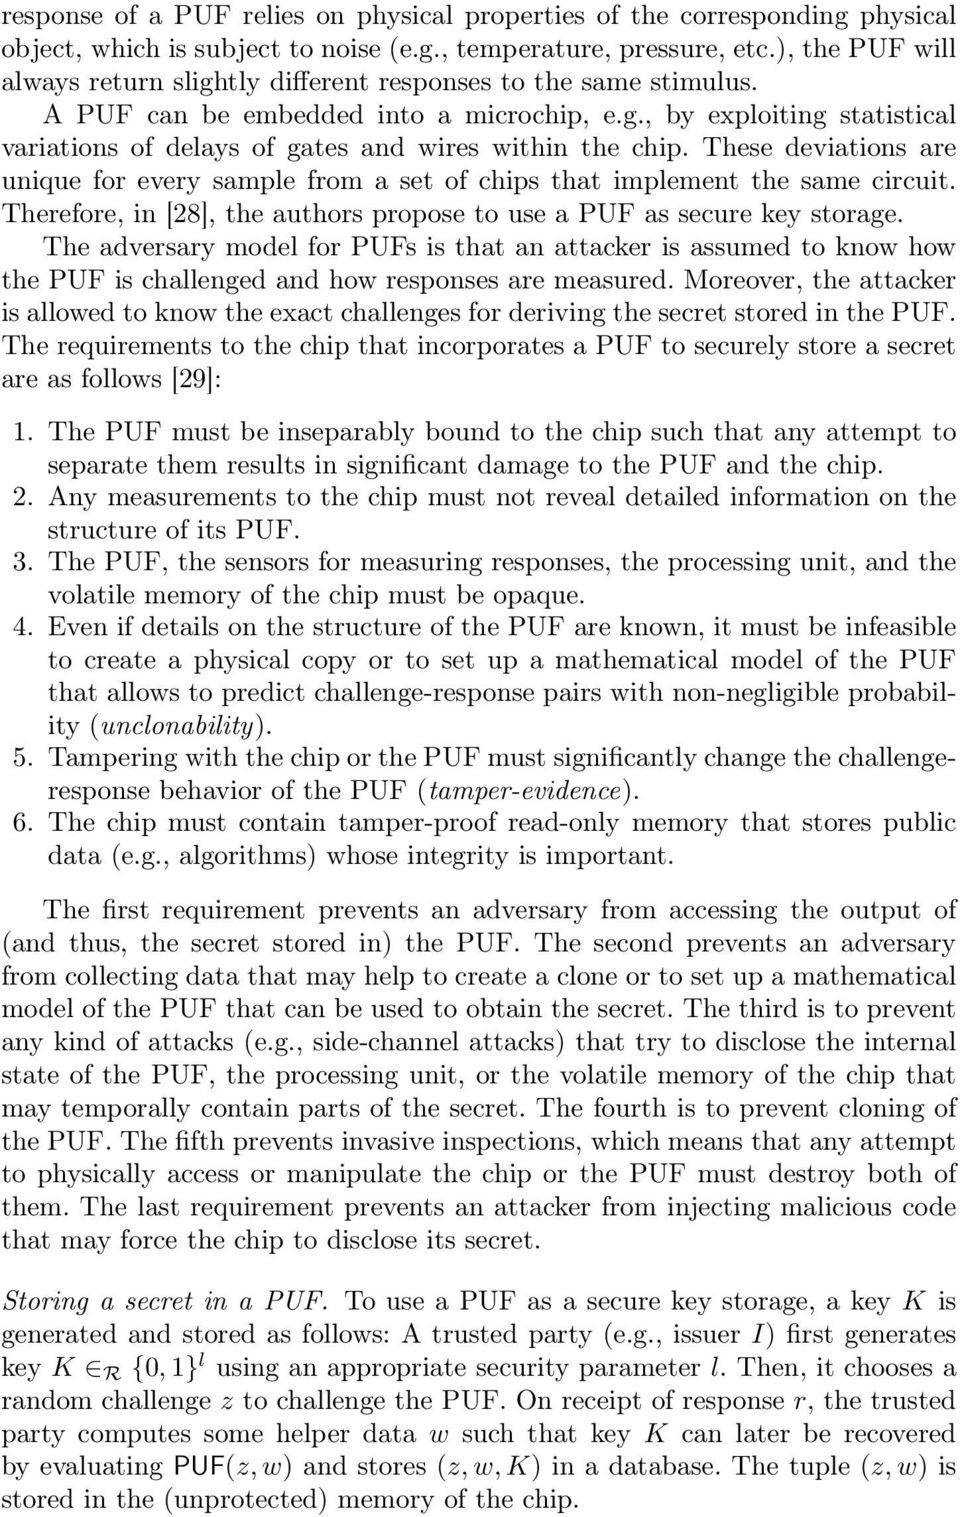 These deviations are unique for every sample from a set of chips that implement the same circuit. Therefore, in [28], the authors propose to use a PUF as secure key storage.